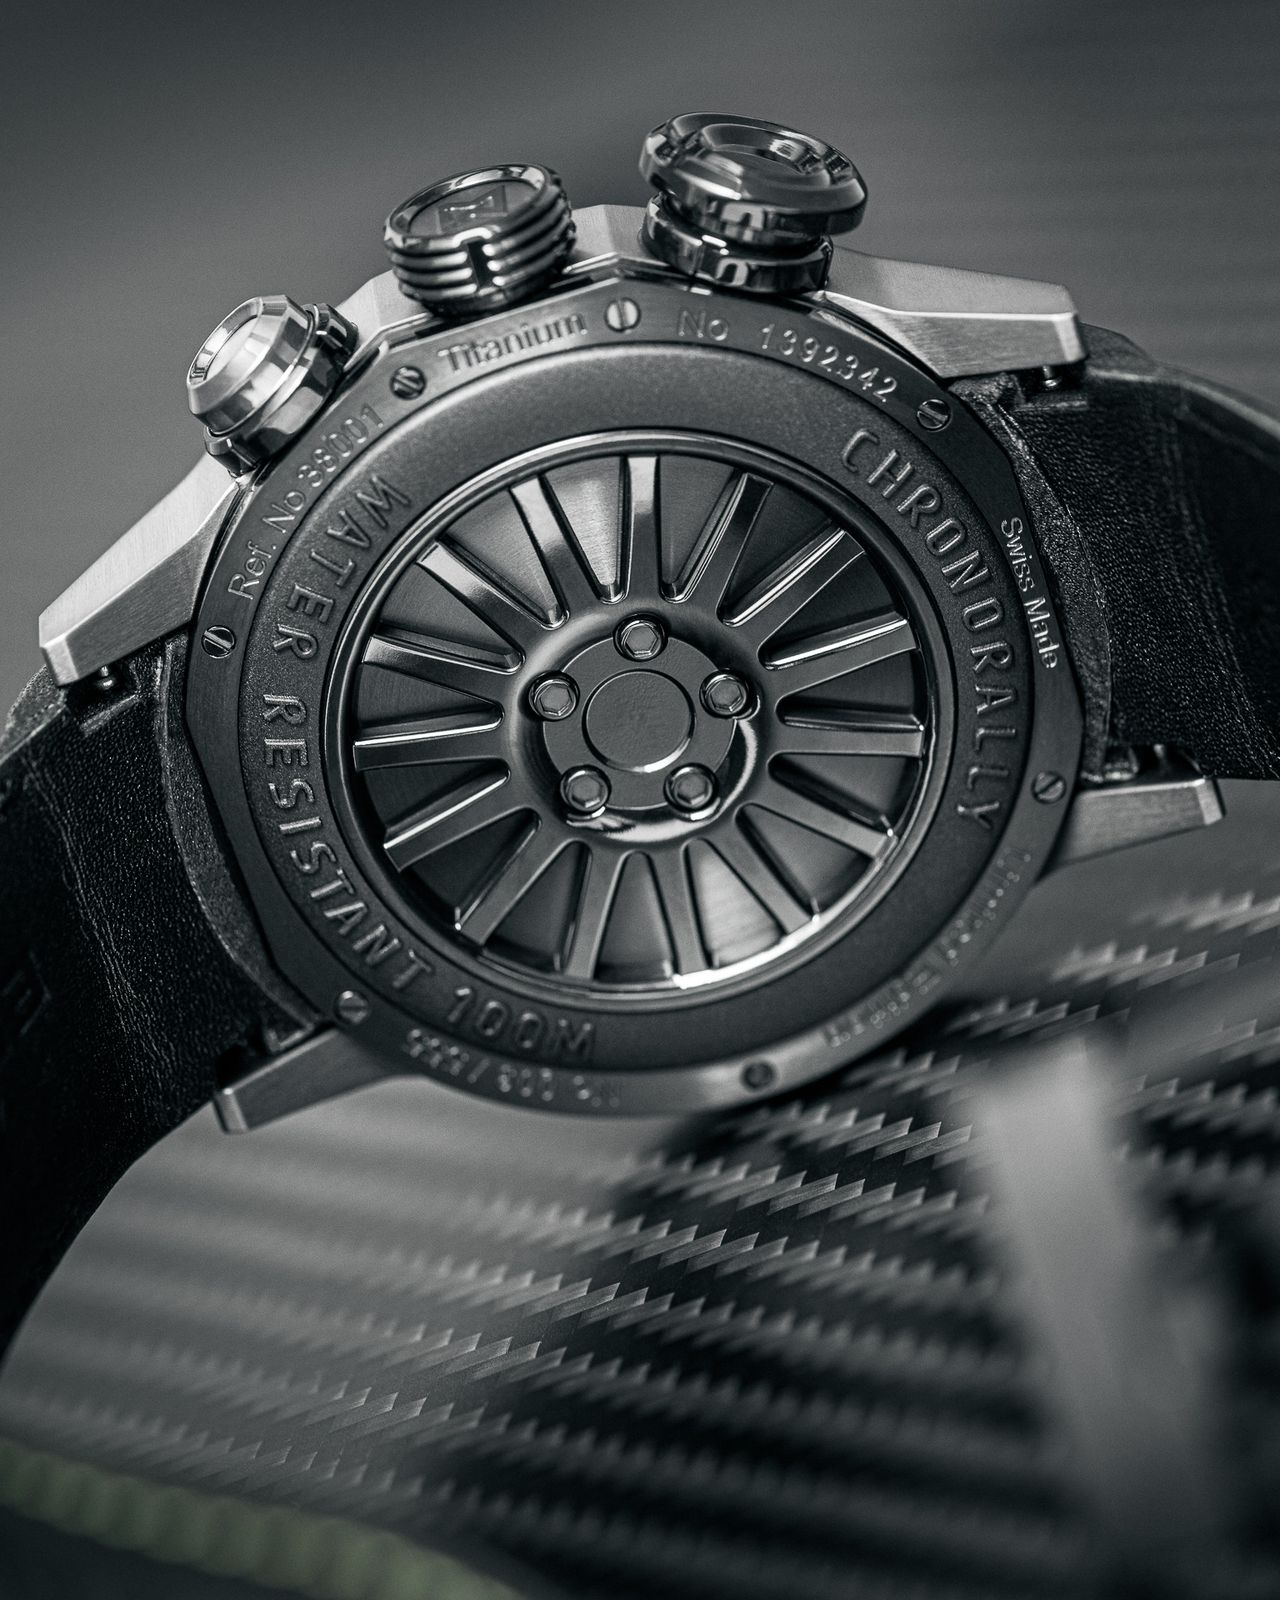 Edox Chronorally X-Treme Pilot - Limited Edition